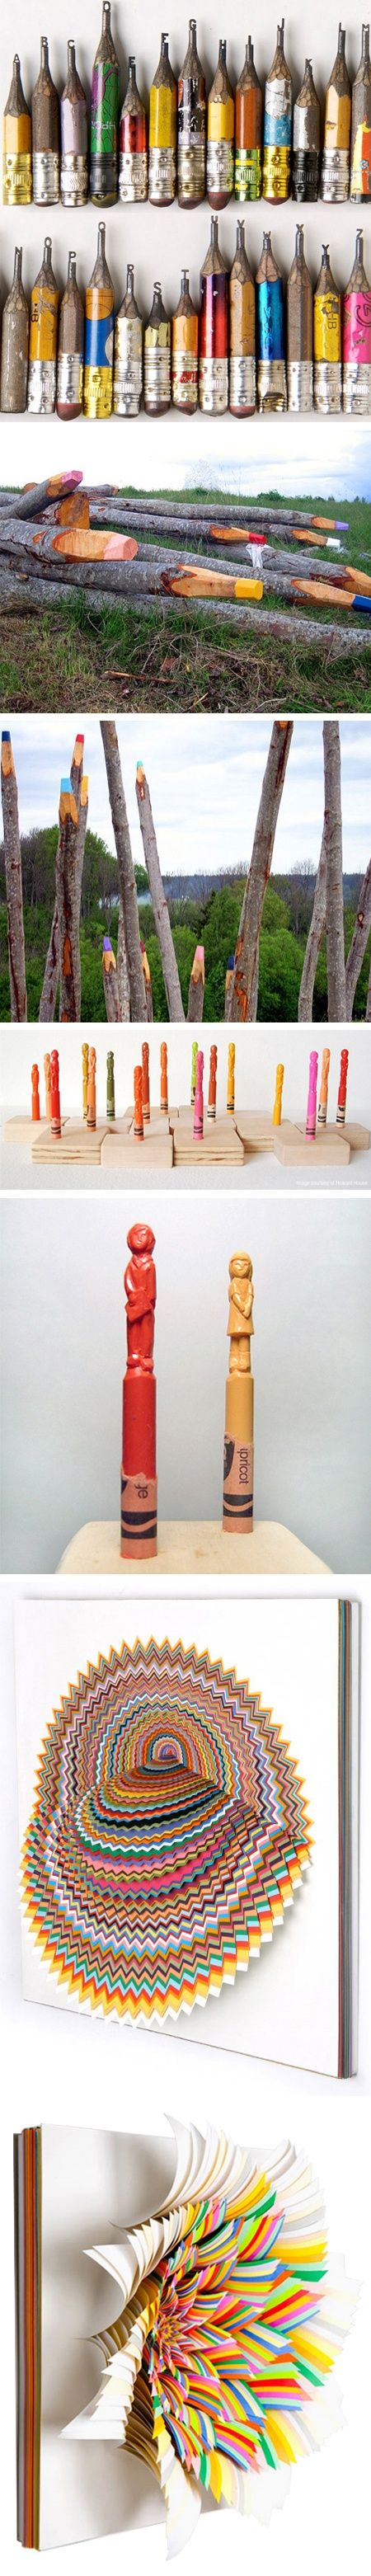 [This is just unreal. Look at the top one...the alphabet carved out of pencils